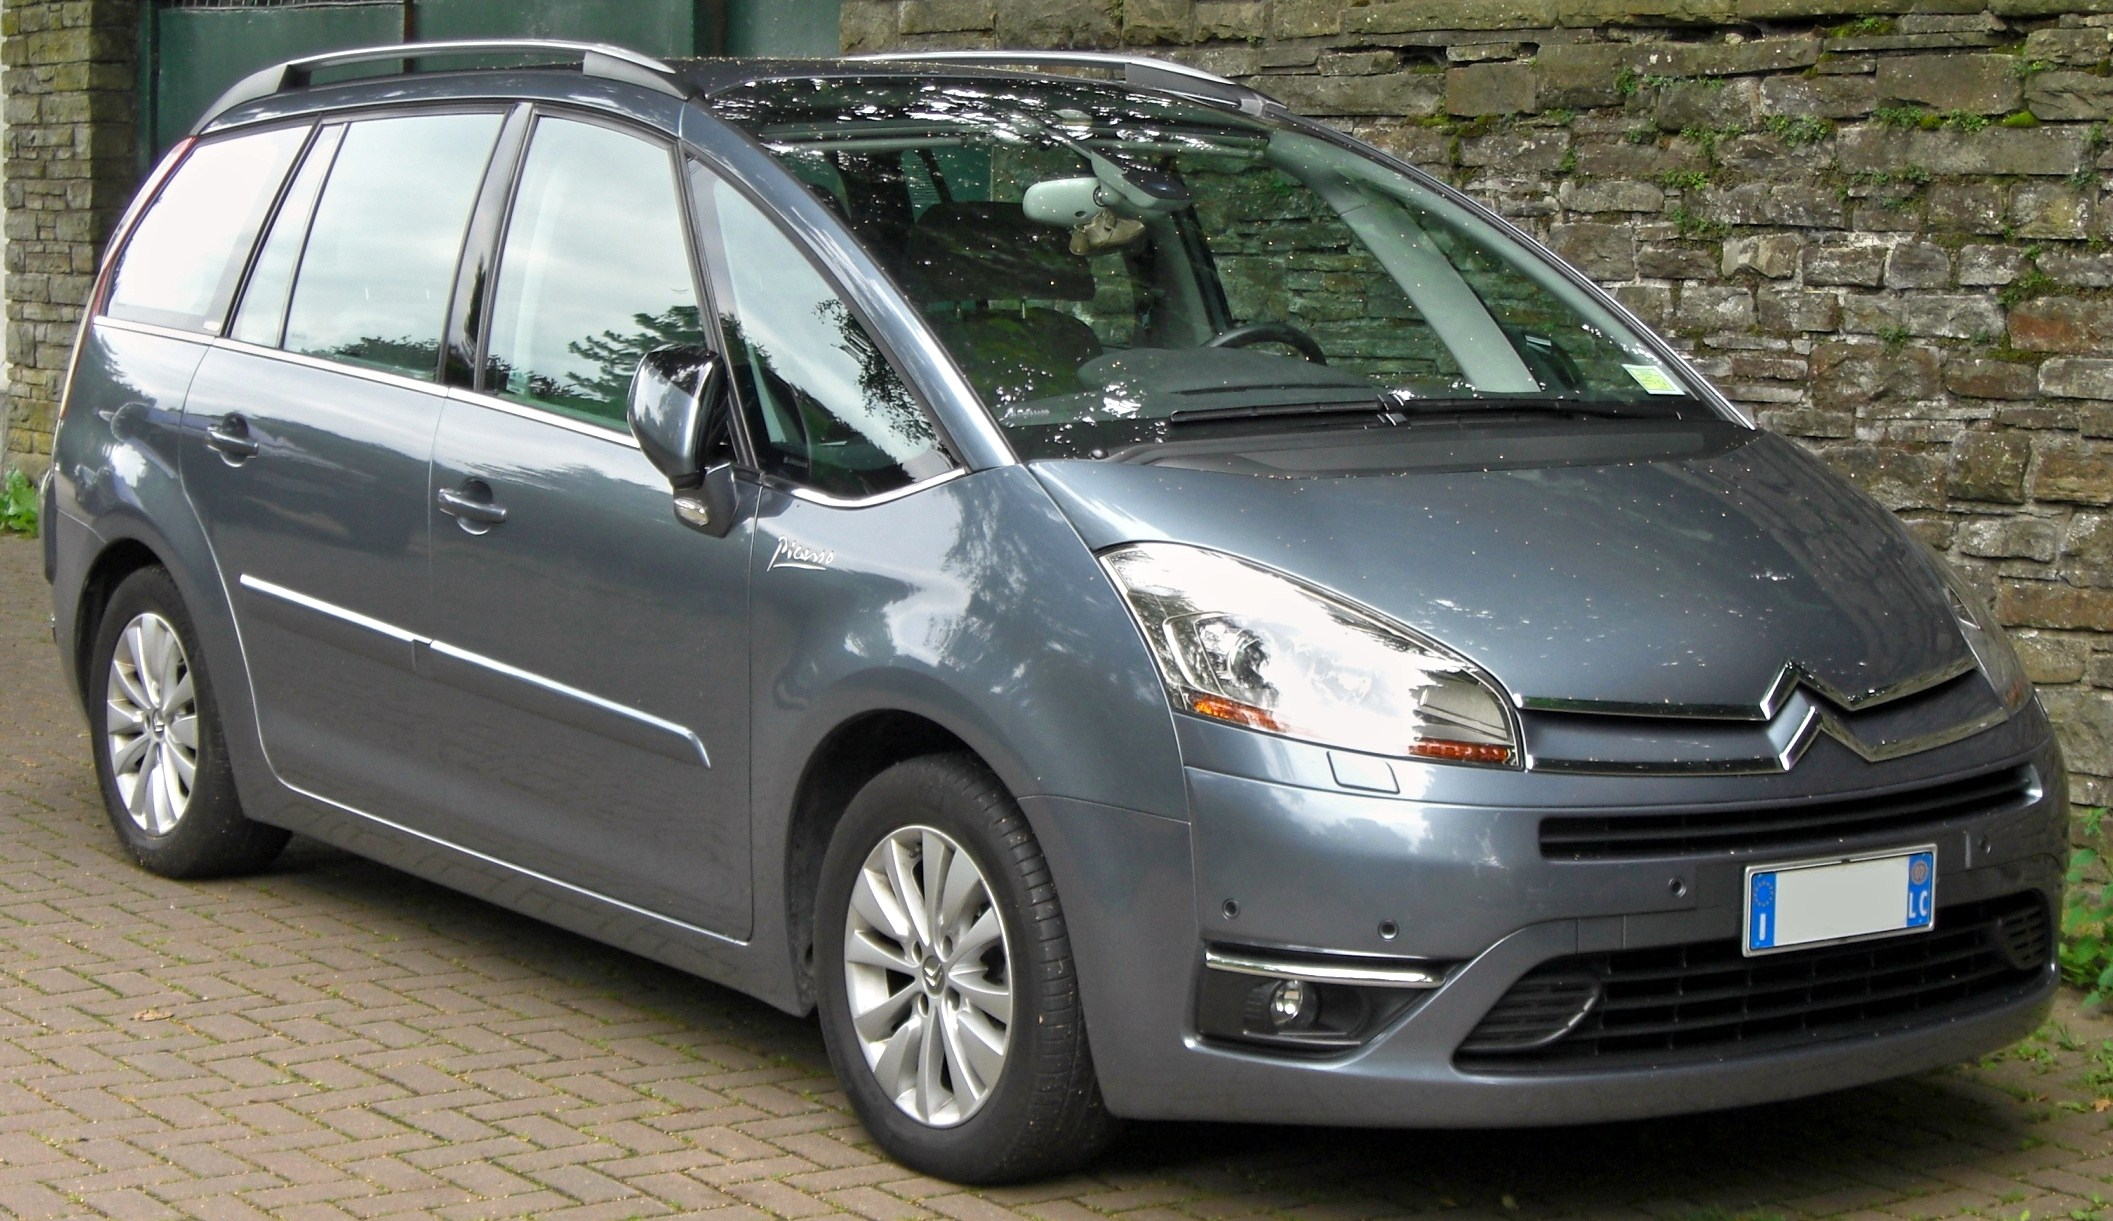 citroen c4 grand picasso reviews citroen c4 grand. Black Bedroom Furniture Sets. Home Design Ideas